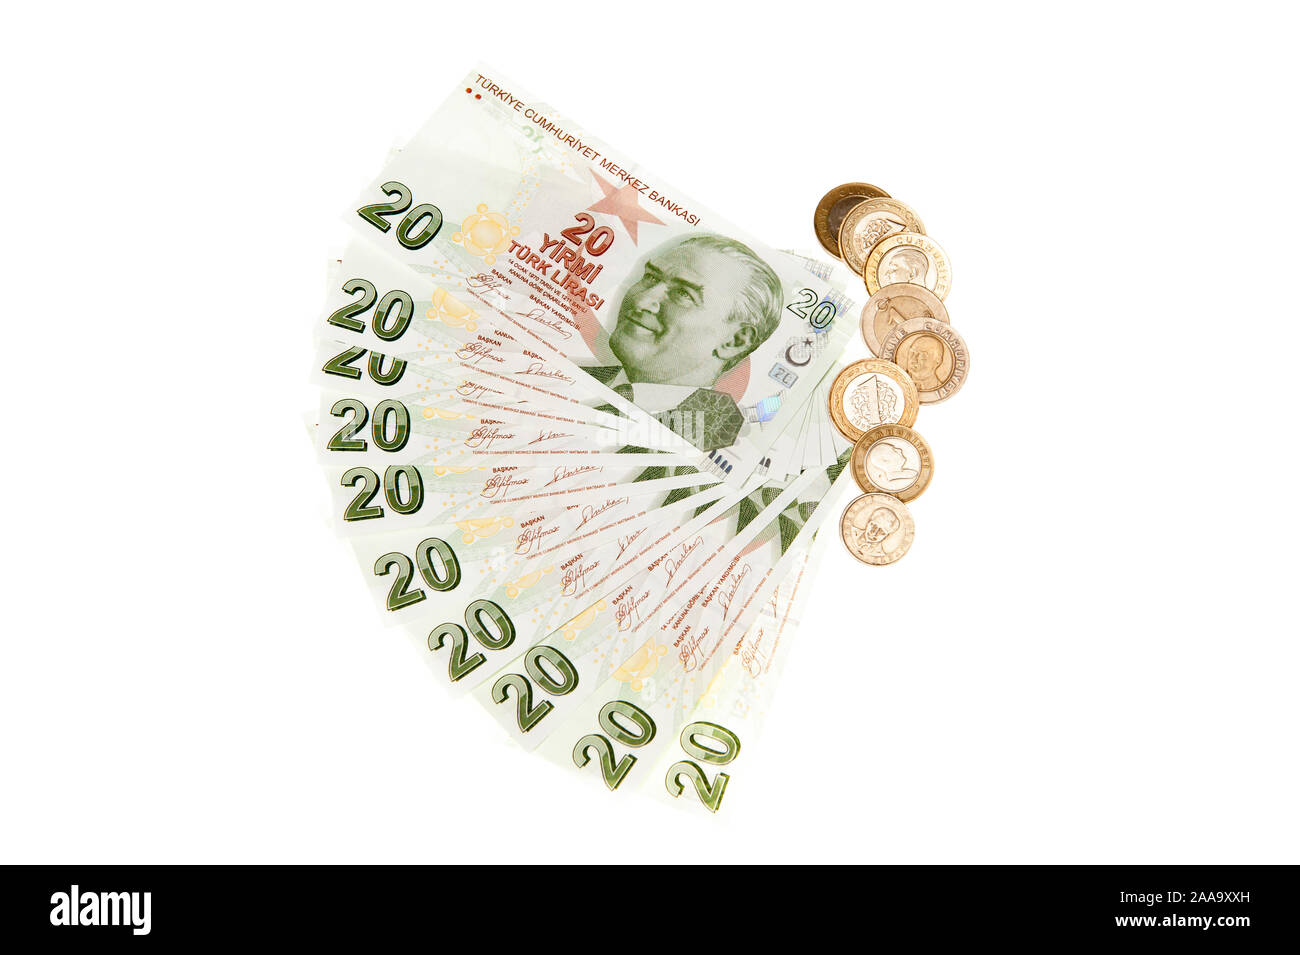 Turkey currency - Turkish Lira bank notes and coins on white background Stock Photo